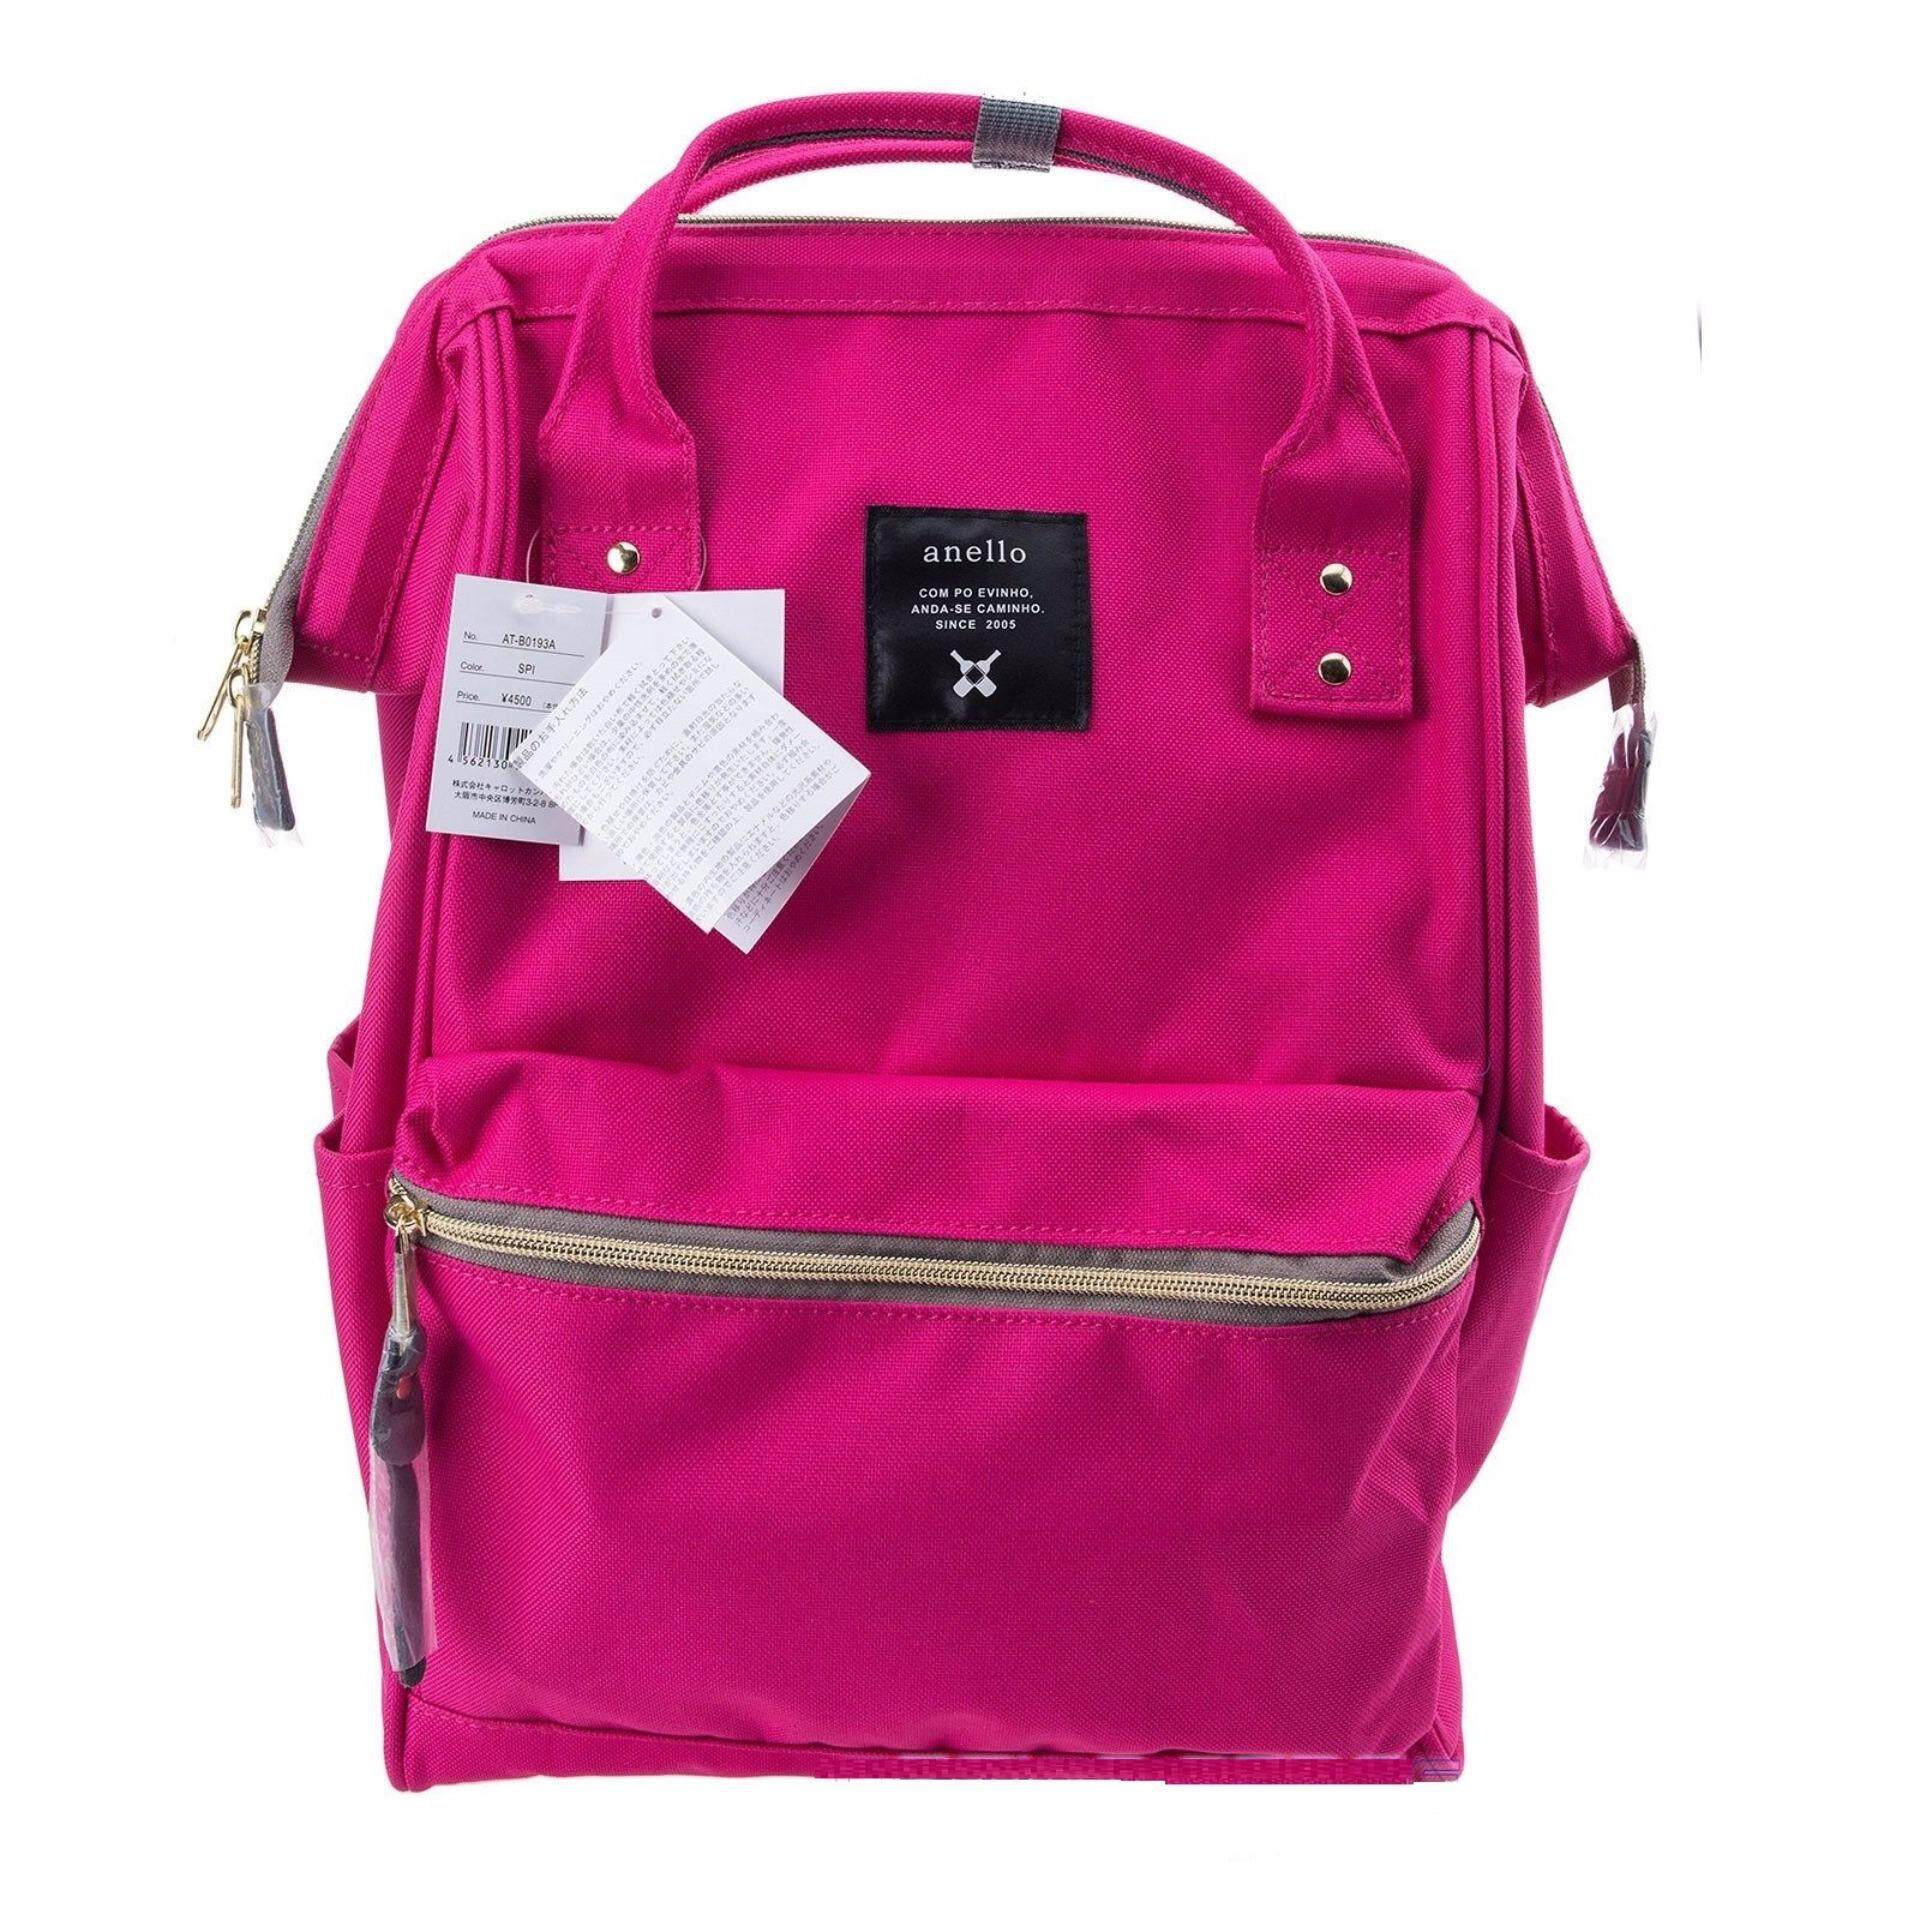 กระเป๋าสะพายหลัง Anello Canvas Unisex Backpack Shocking Pink (Classic Size) - Japan Imported 100%